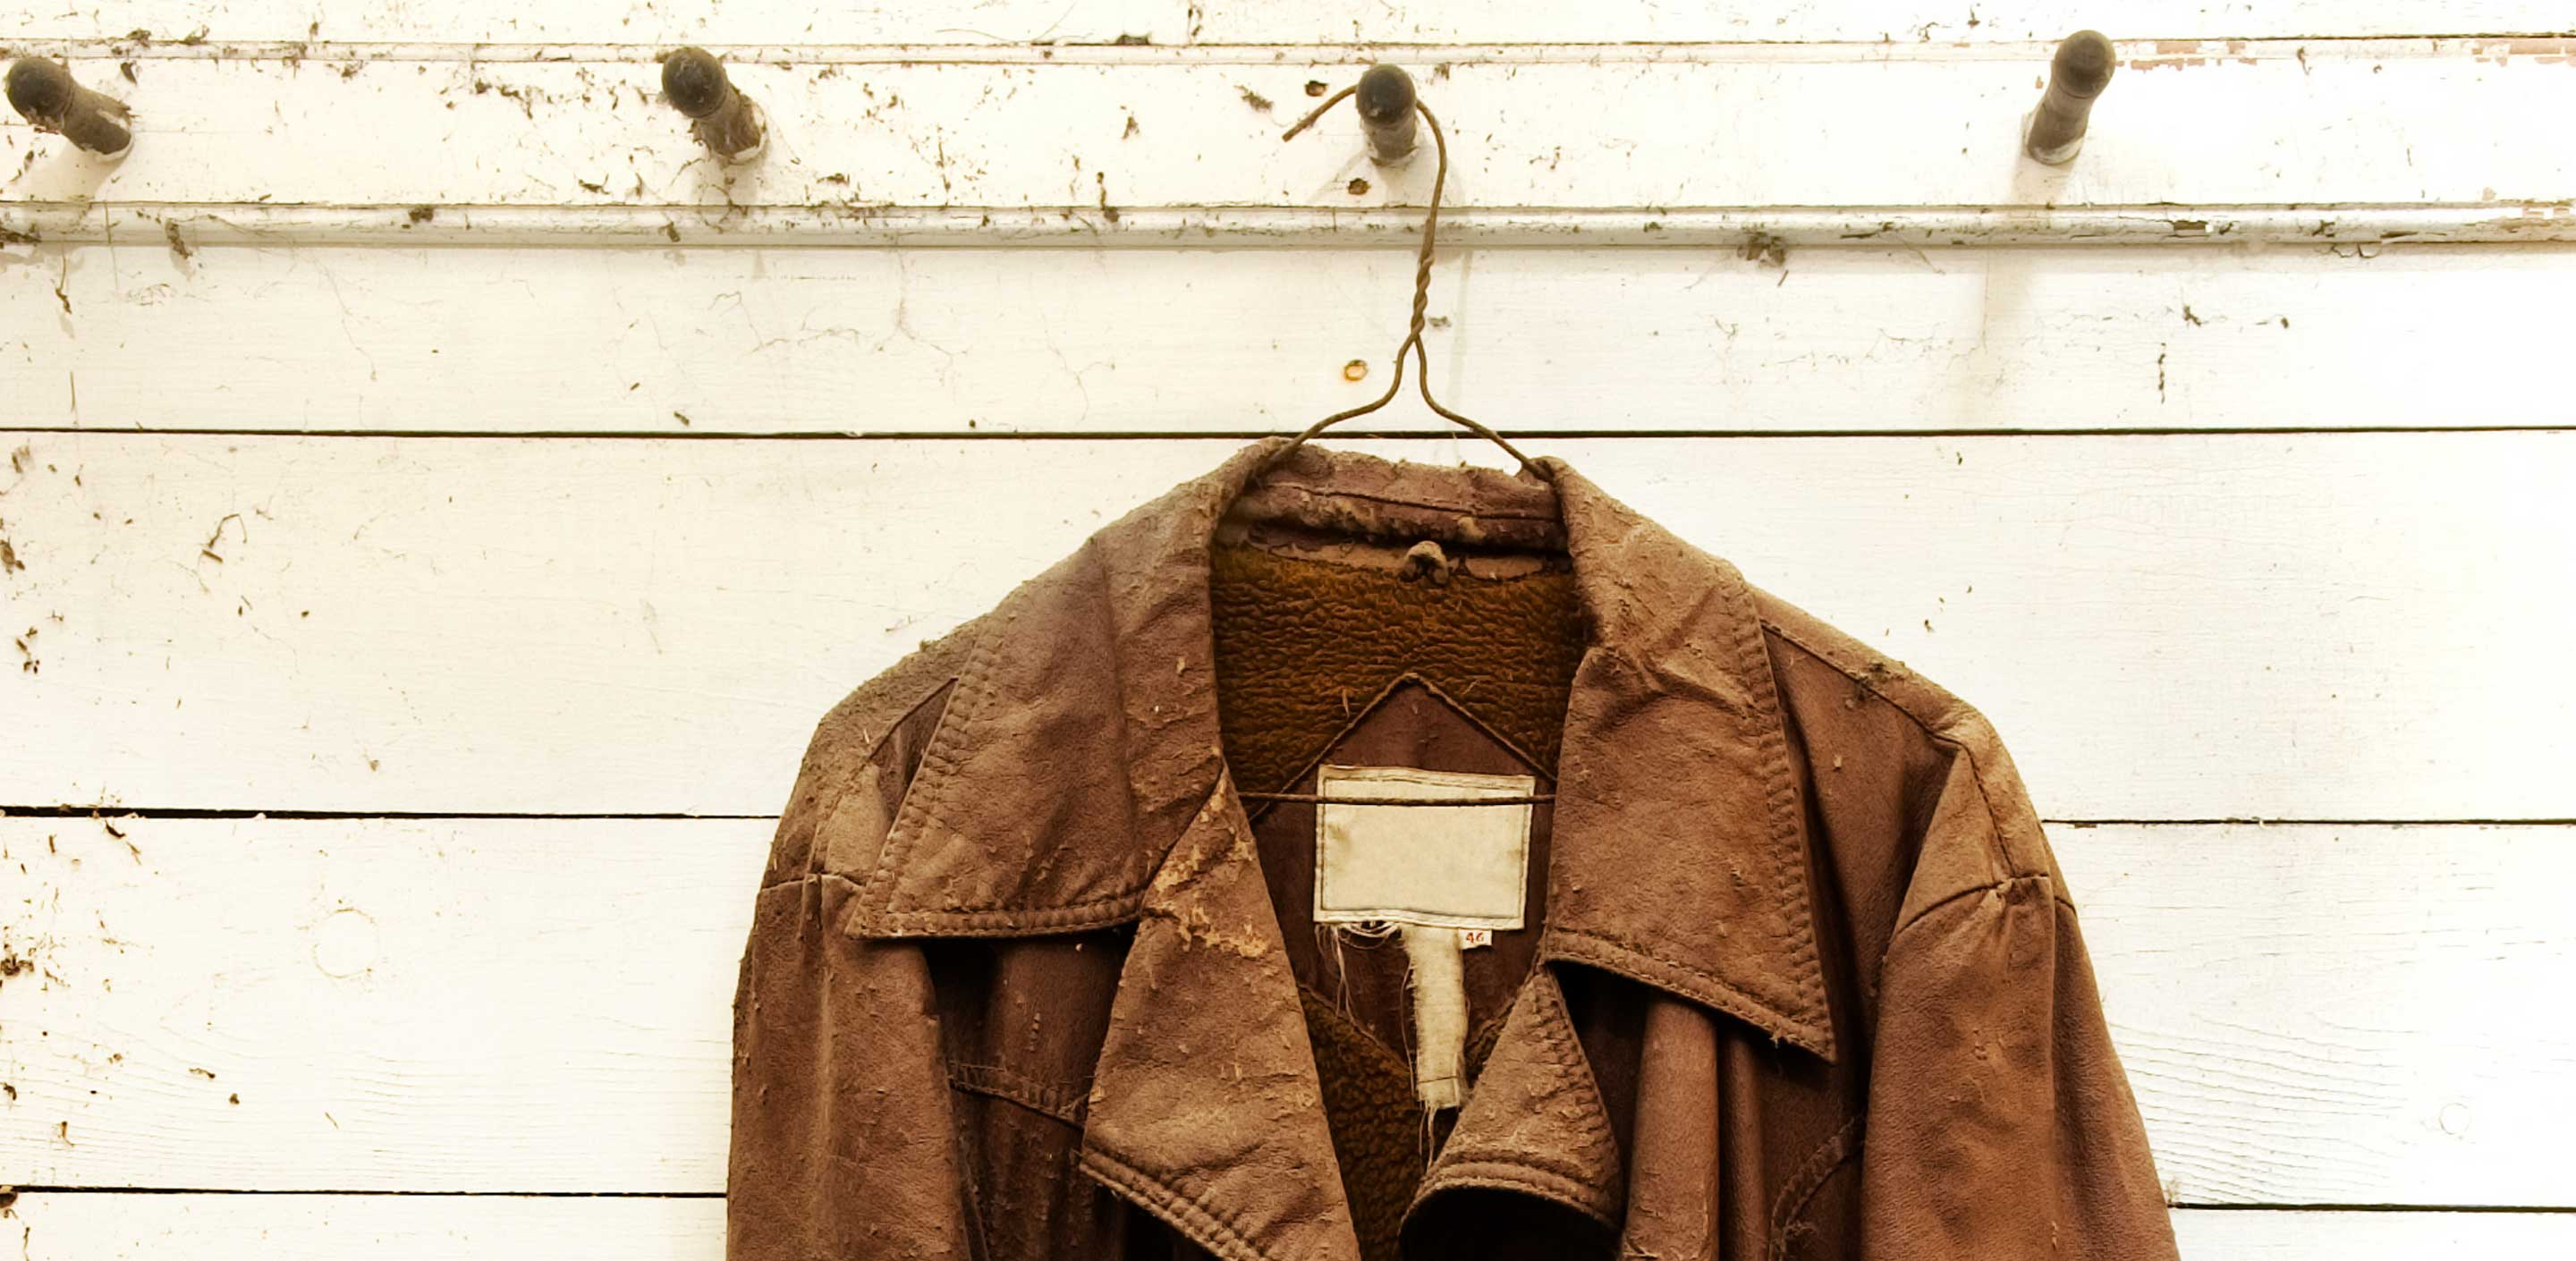 How To Remove Mould From Leather Jacket